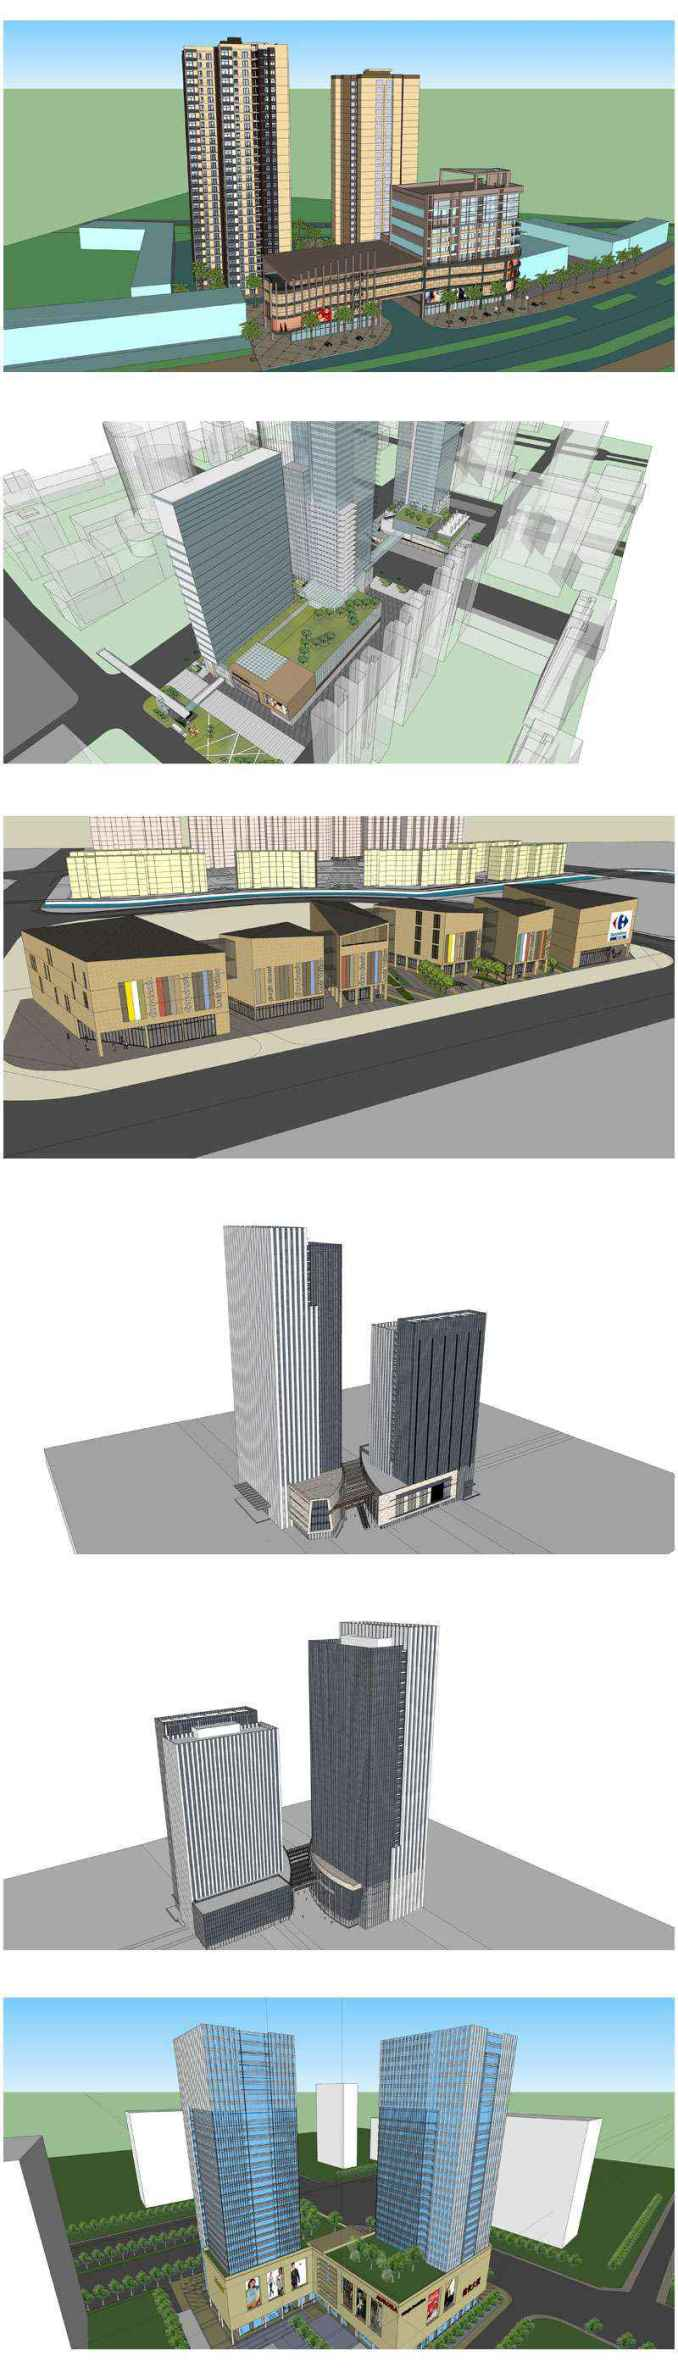 ★Best 50 Types of City Design,Commercial Building Sketchup 3D Models Collection